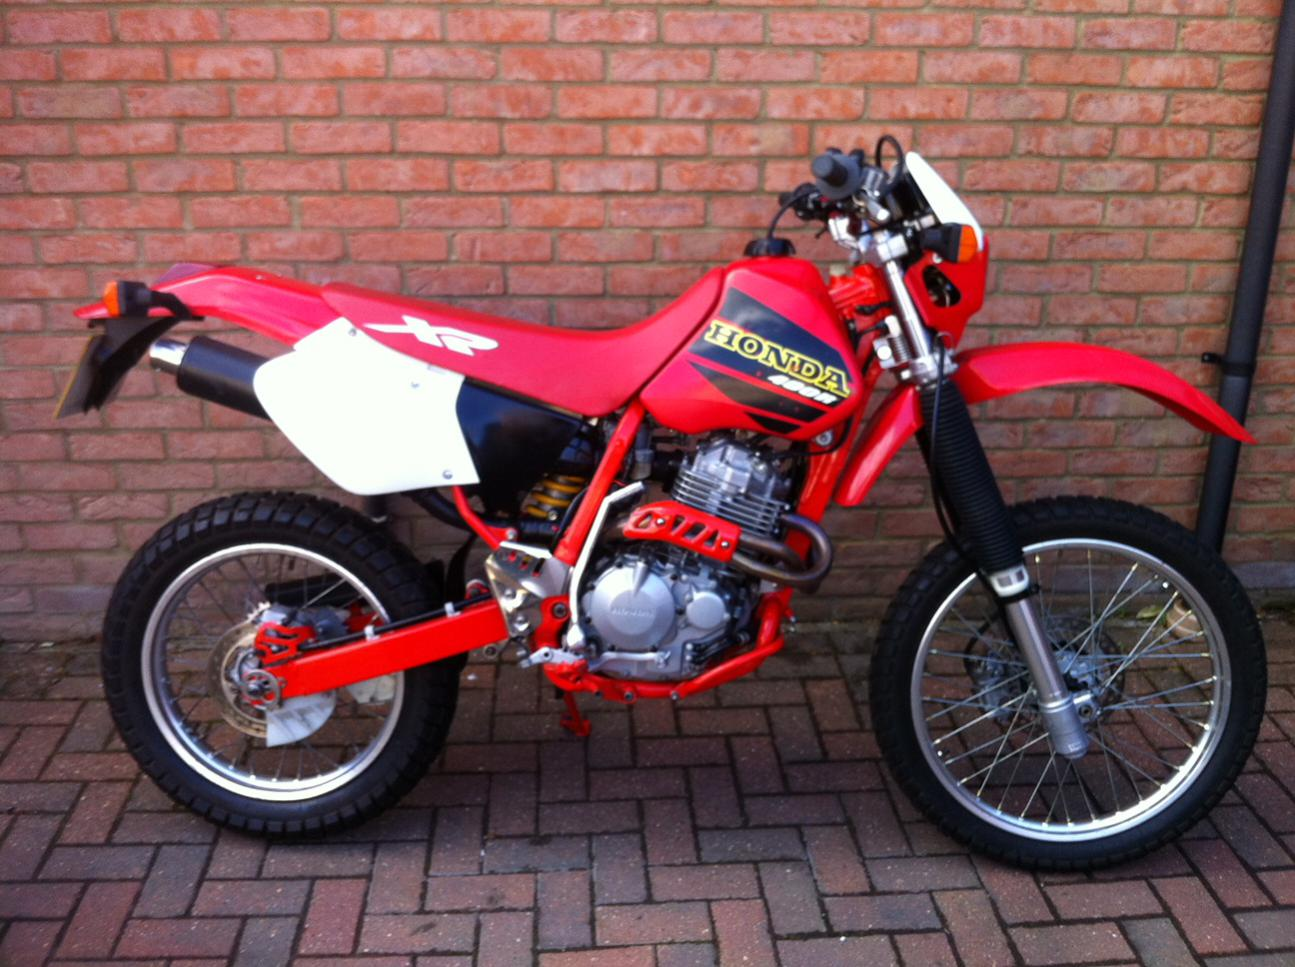 Crf450 forks on an XR400